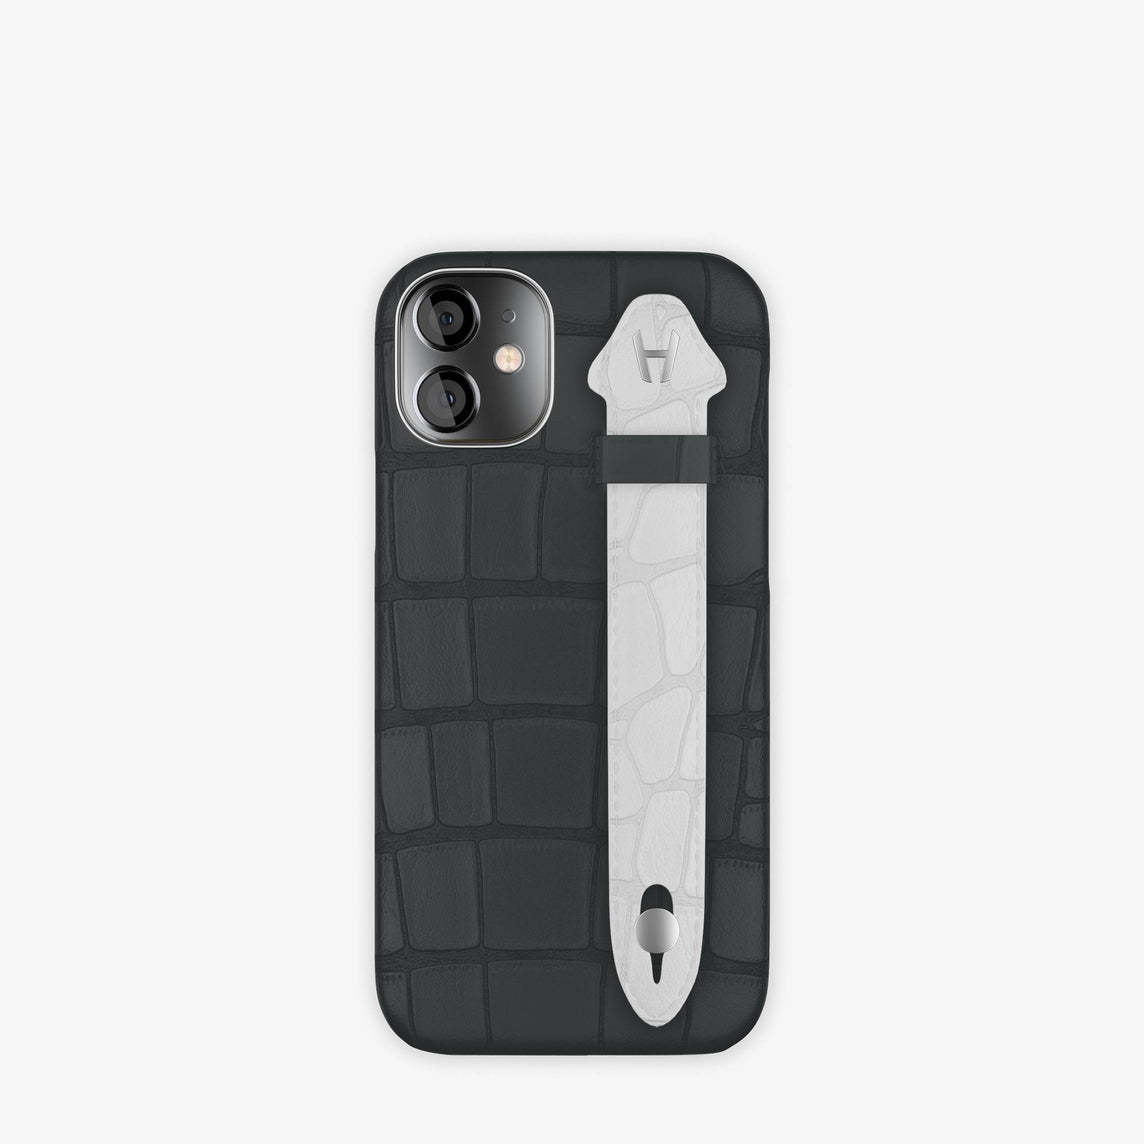 Alligator Side Finger Case iPhone 12 Mini | Anthracite/White -Stainless Steel